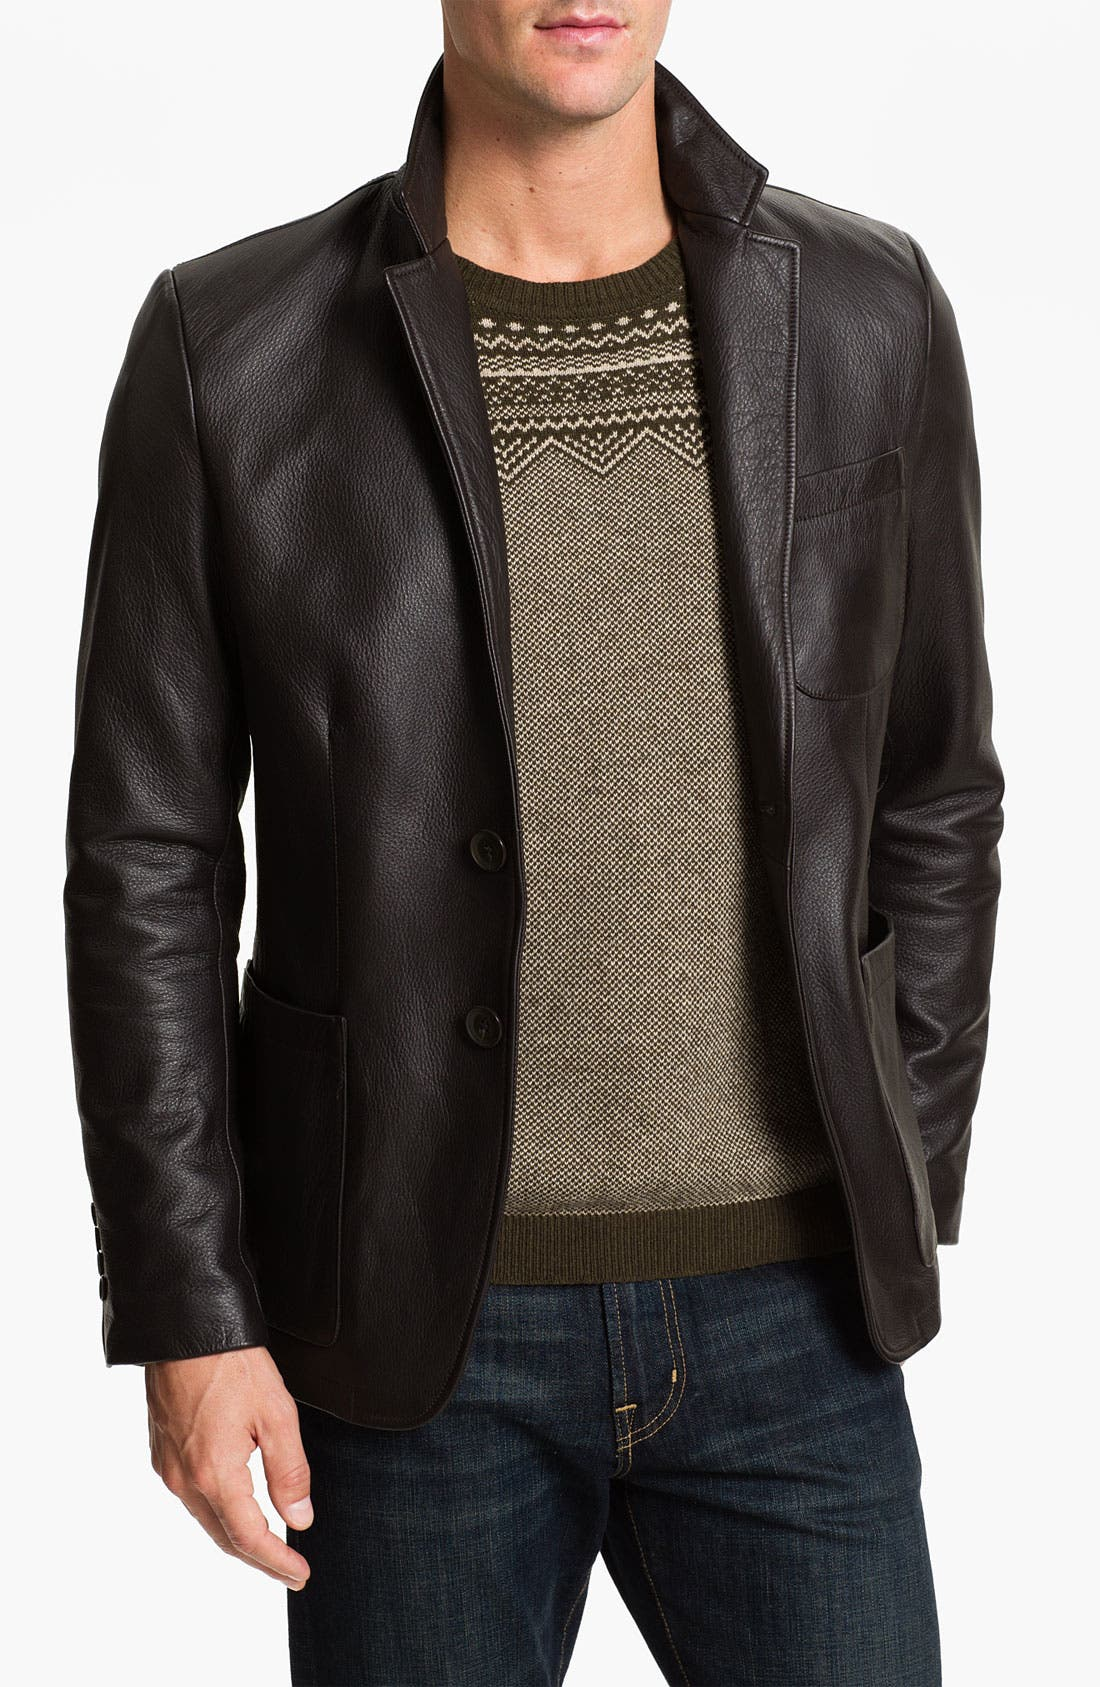 Main Image - Alex & Co. Leather Blazer